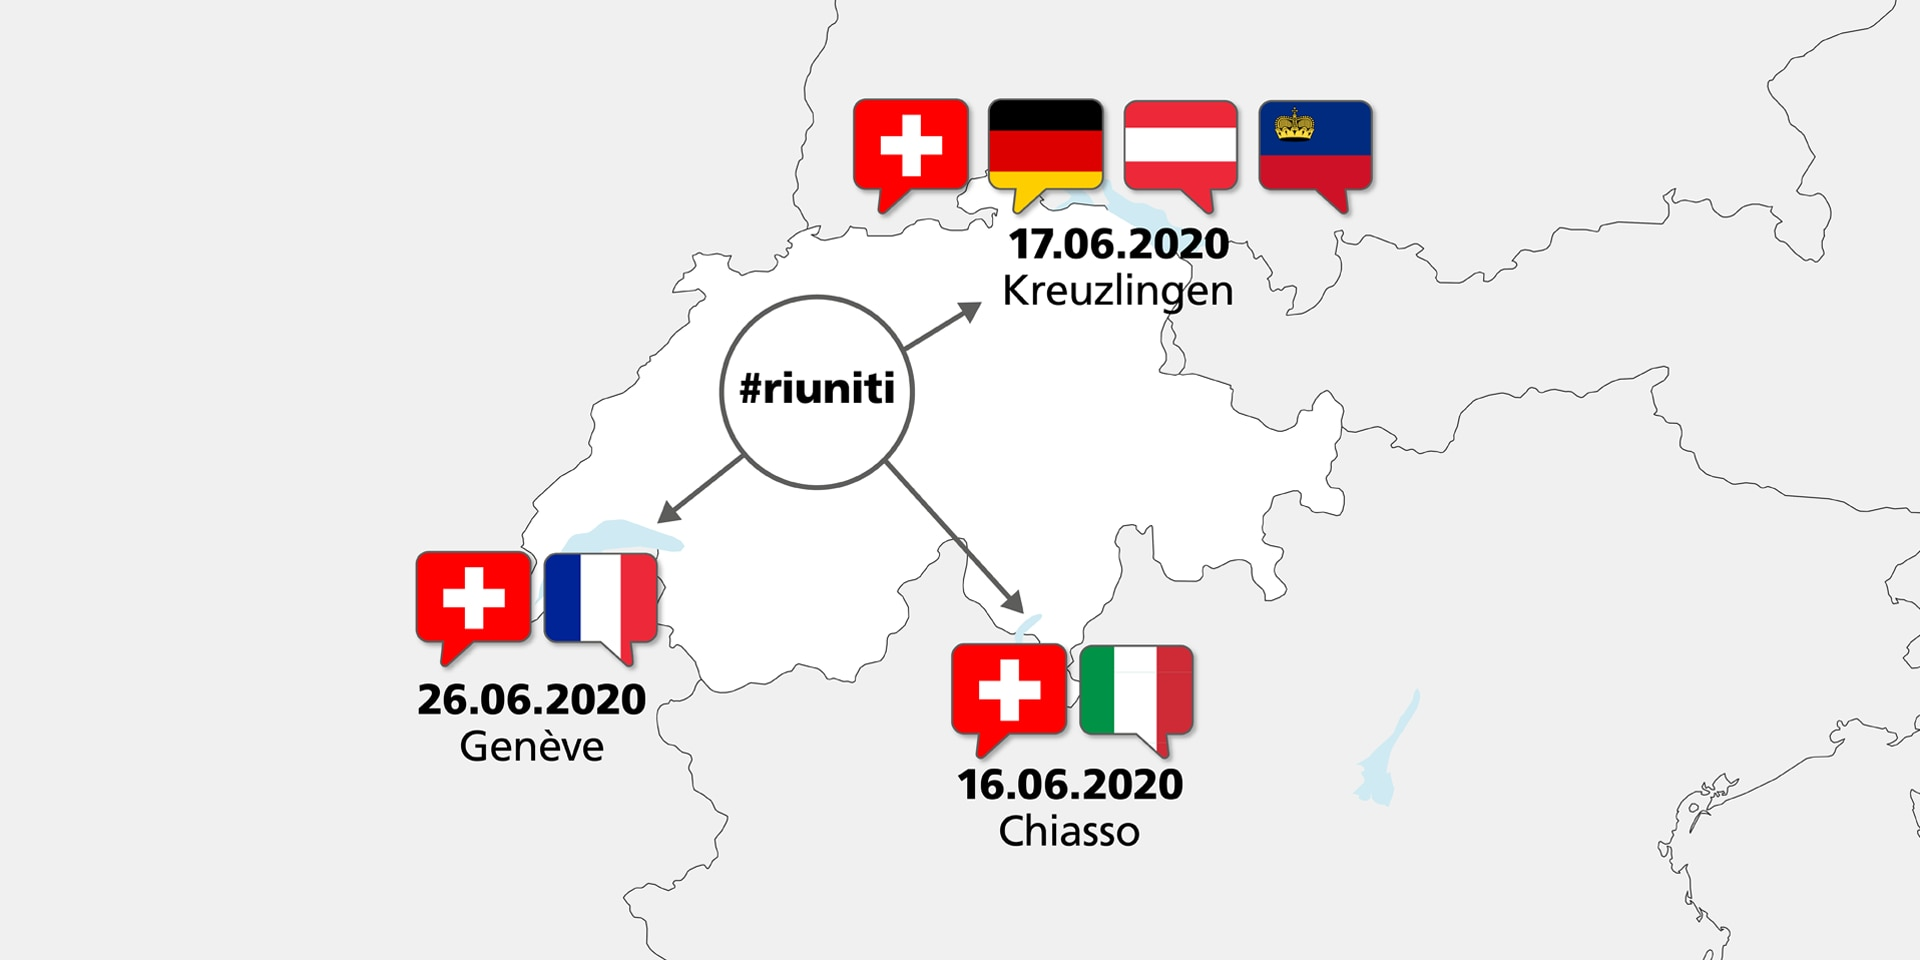 Map of Switzerland showing which national representativesFederal Councillor Cassis will be meeting and where. In Chiasso he meets the Italian Foreign Minister. In Kreuzlingen he will meet representatives of Austria, Liechtenstein and Germany, and in Geneva, a representative of France.